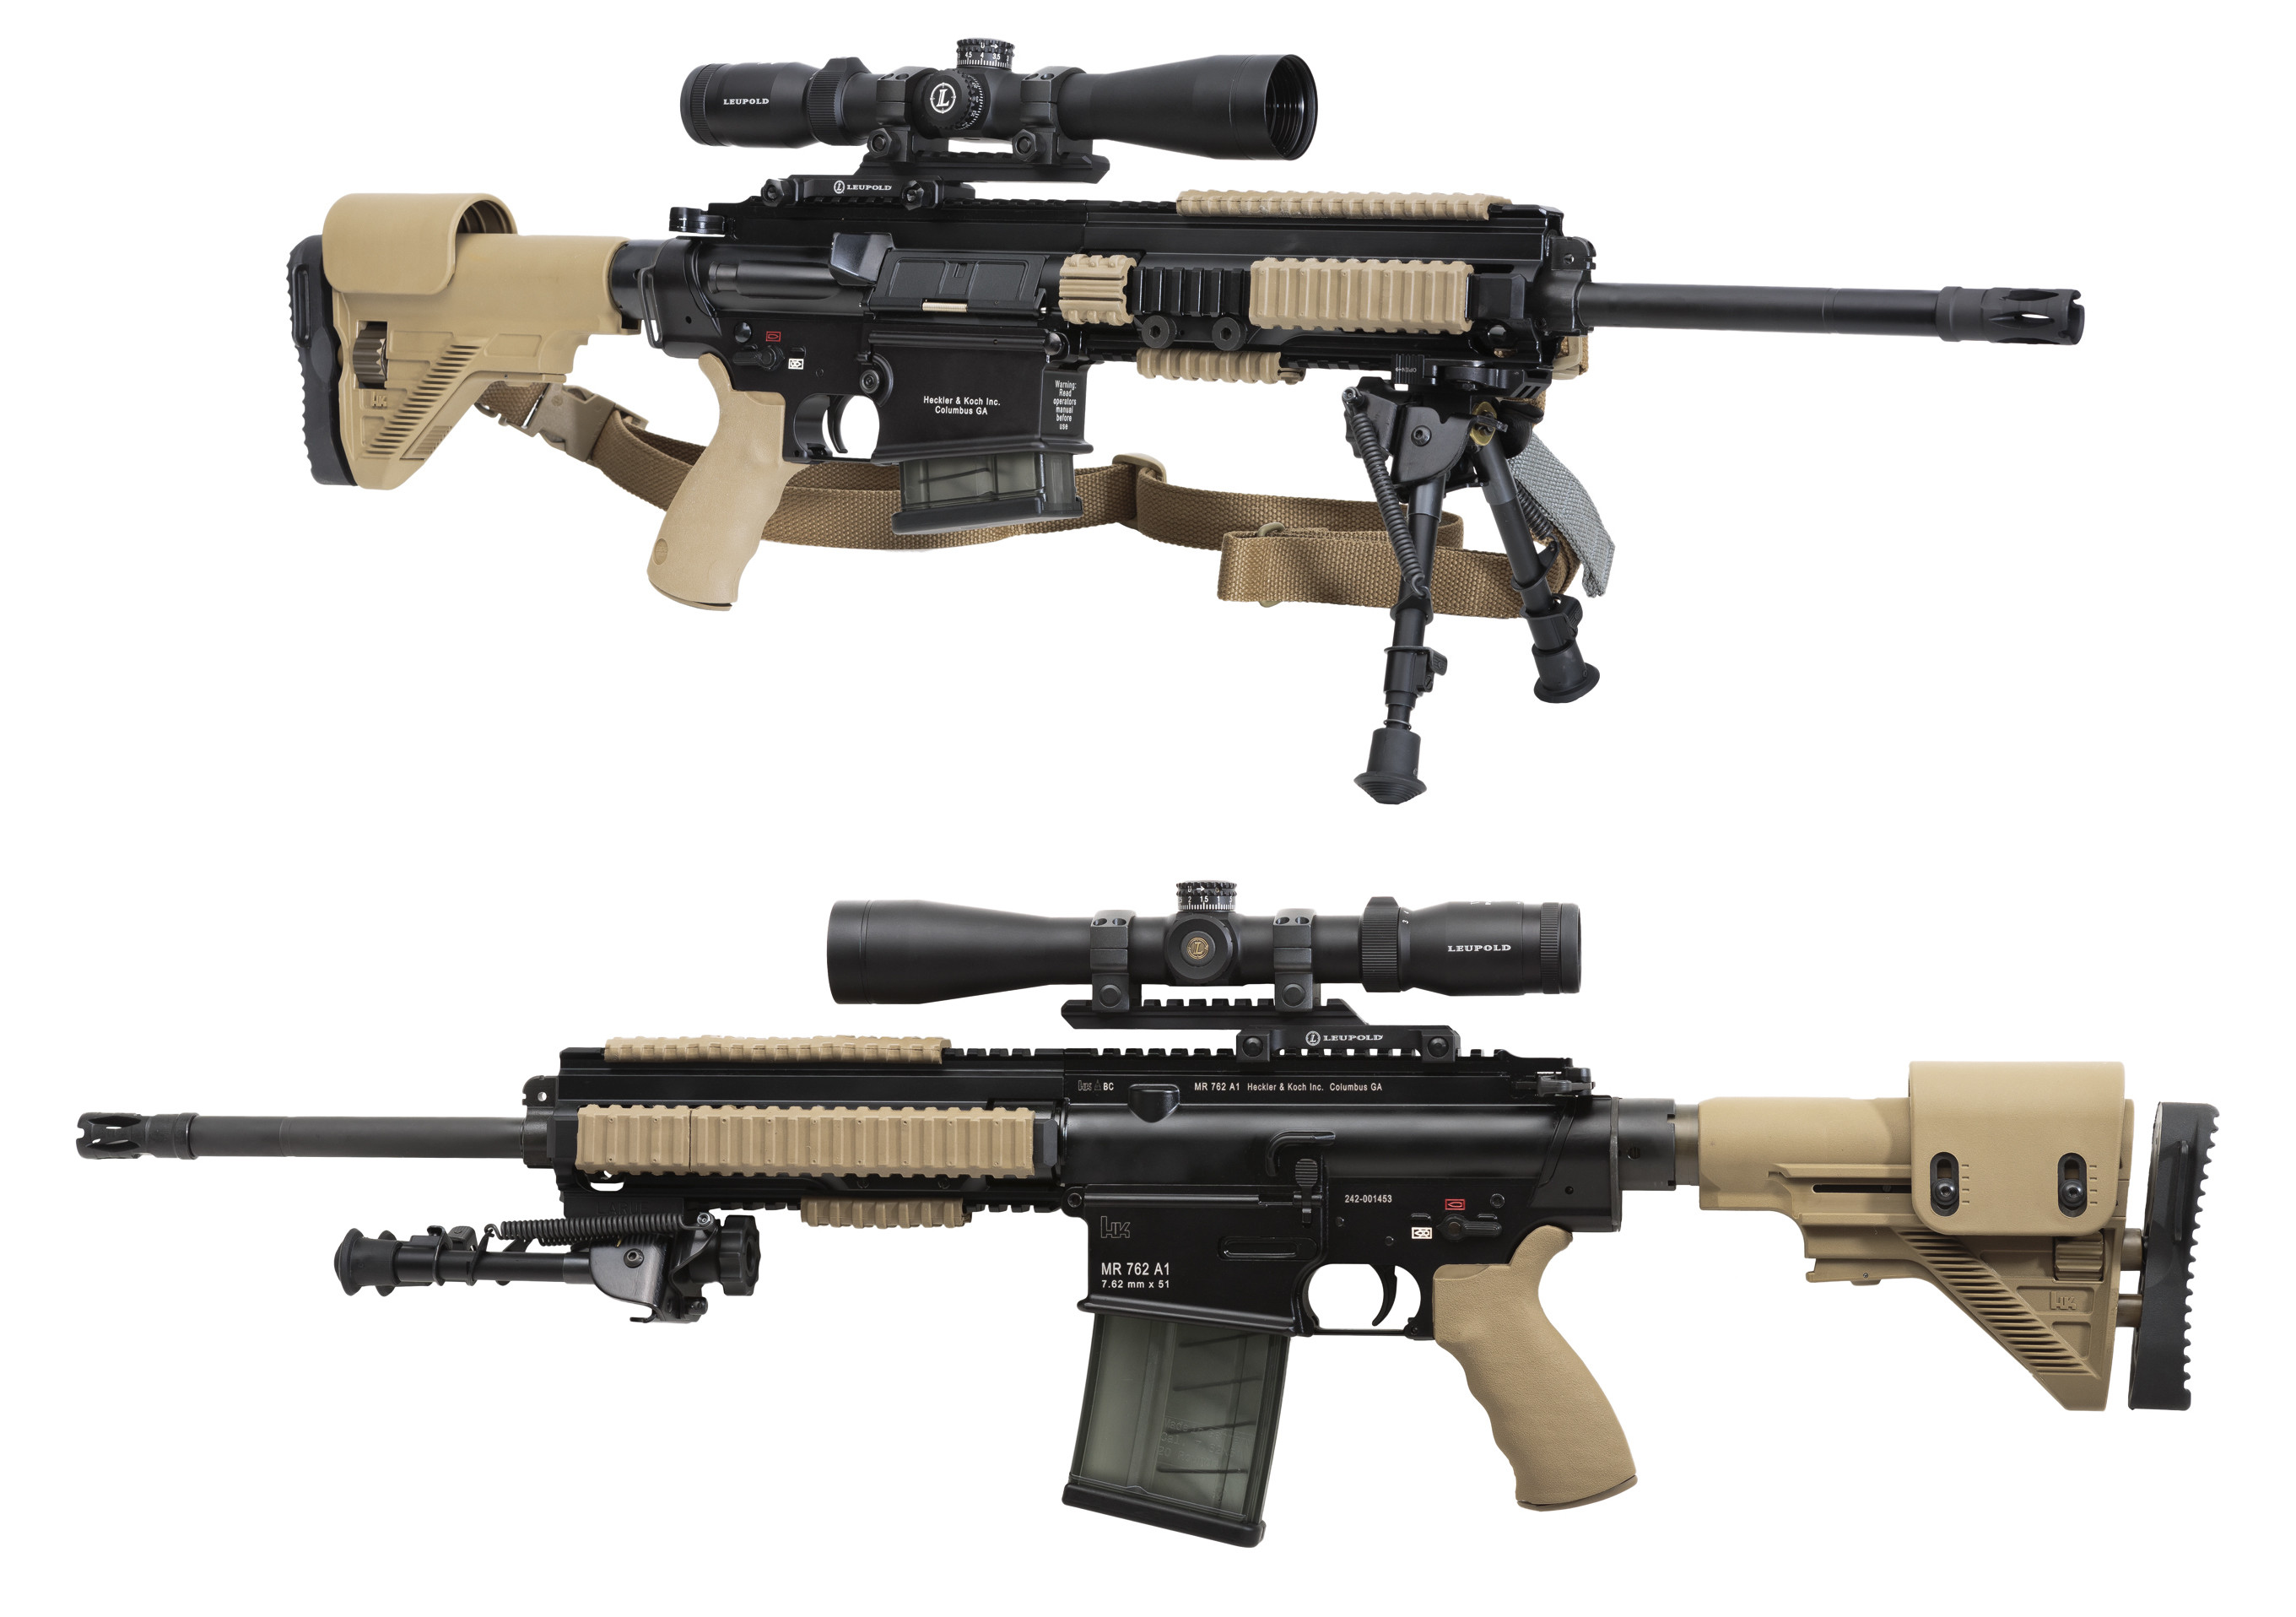 https://www.westhoustonfirearms.com/catalog/rifles/semi-automatic-rifles